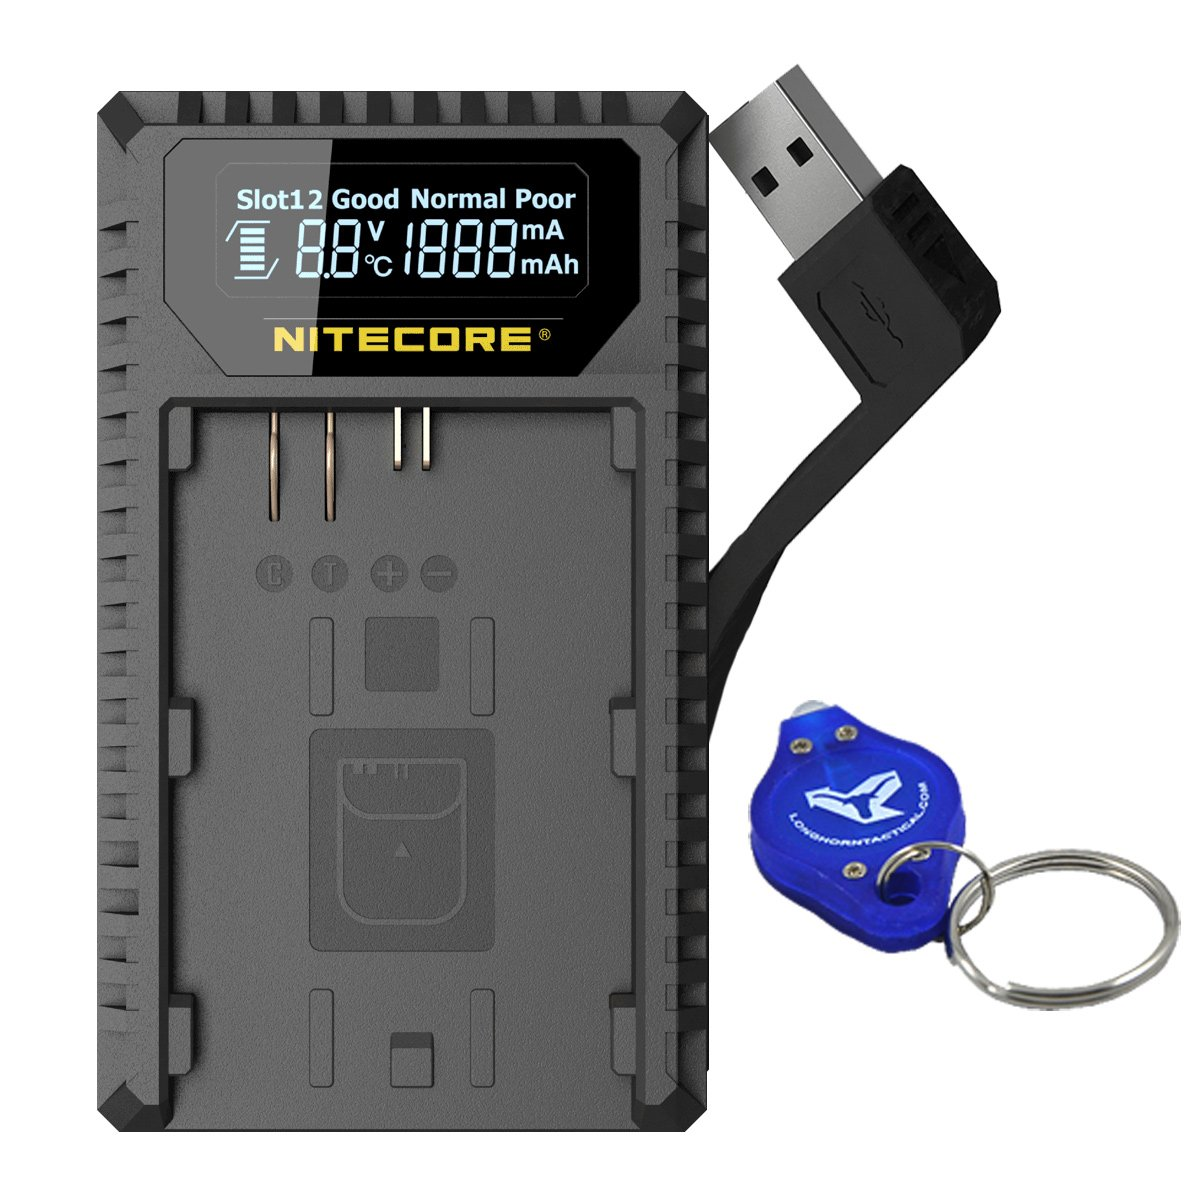 Nitecore UCN1 Digital USB Charger for Canon EOS LP-E6 LP-E6N & LP-E8 Batteries with LumenTac LED Keychain Flashlight - Compatible with Canon Rebel, Kiss, Mark II, Mark III, X4, & T Series